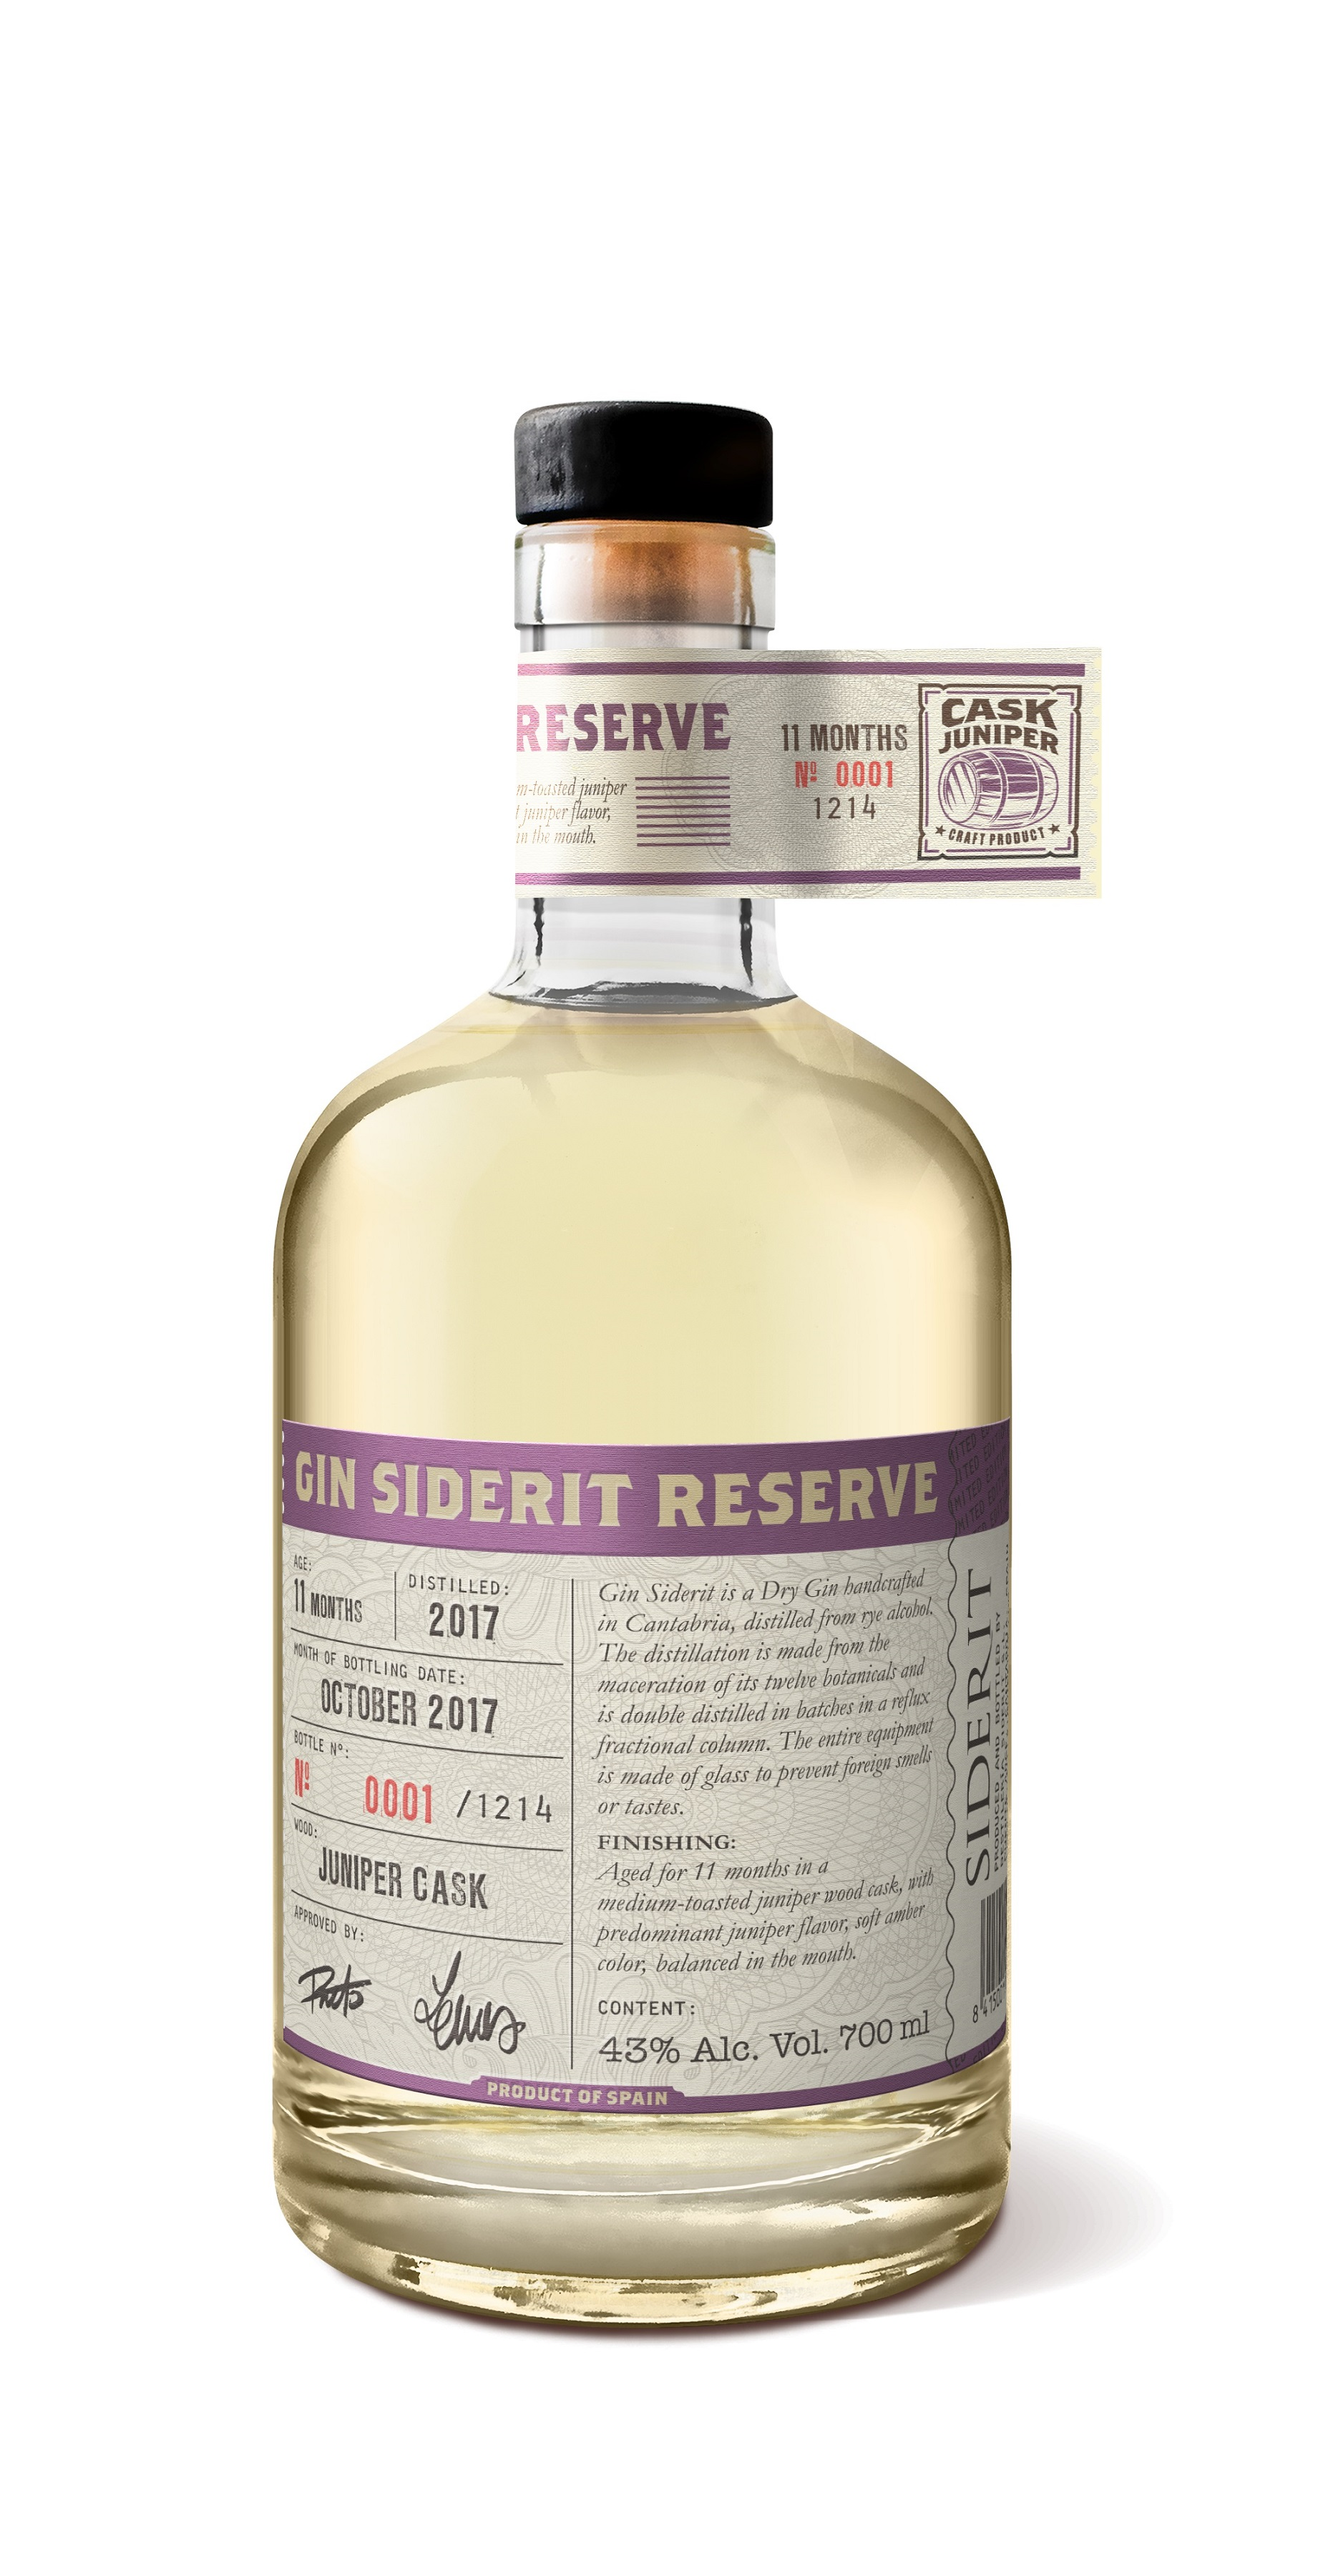 Gin Reserve Siderit aged in Juniper cask, 43% Alc, 700ml